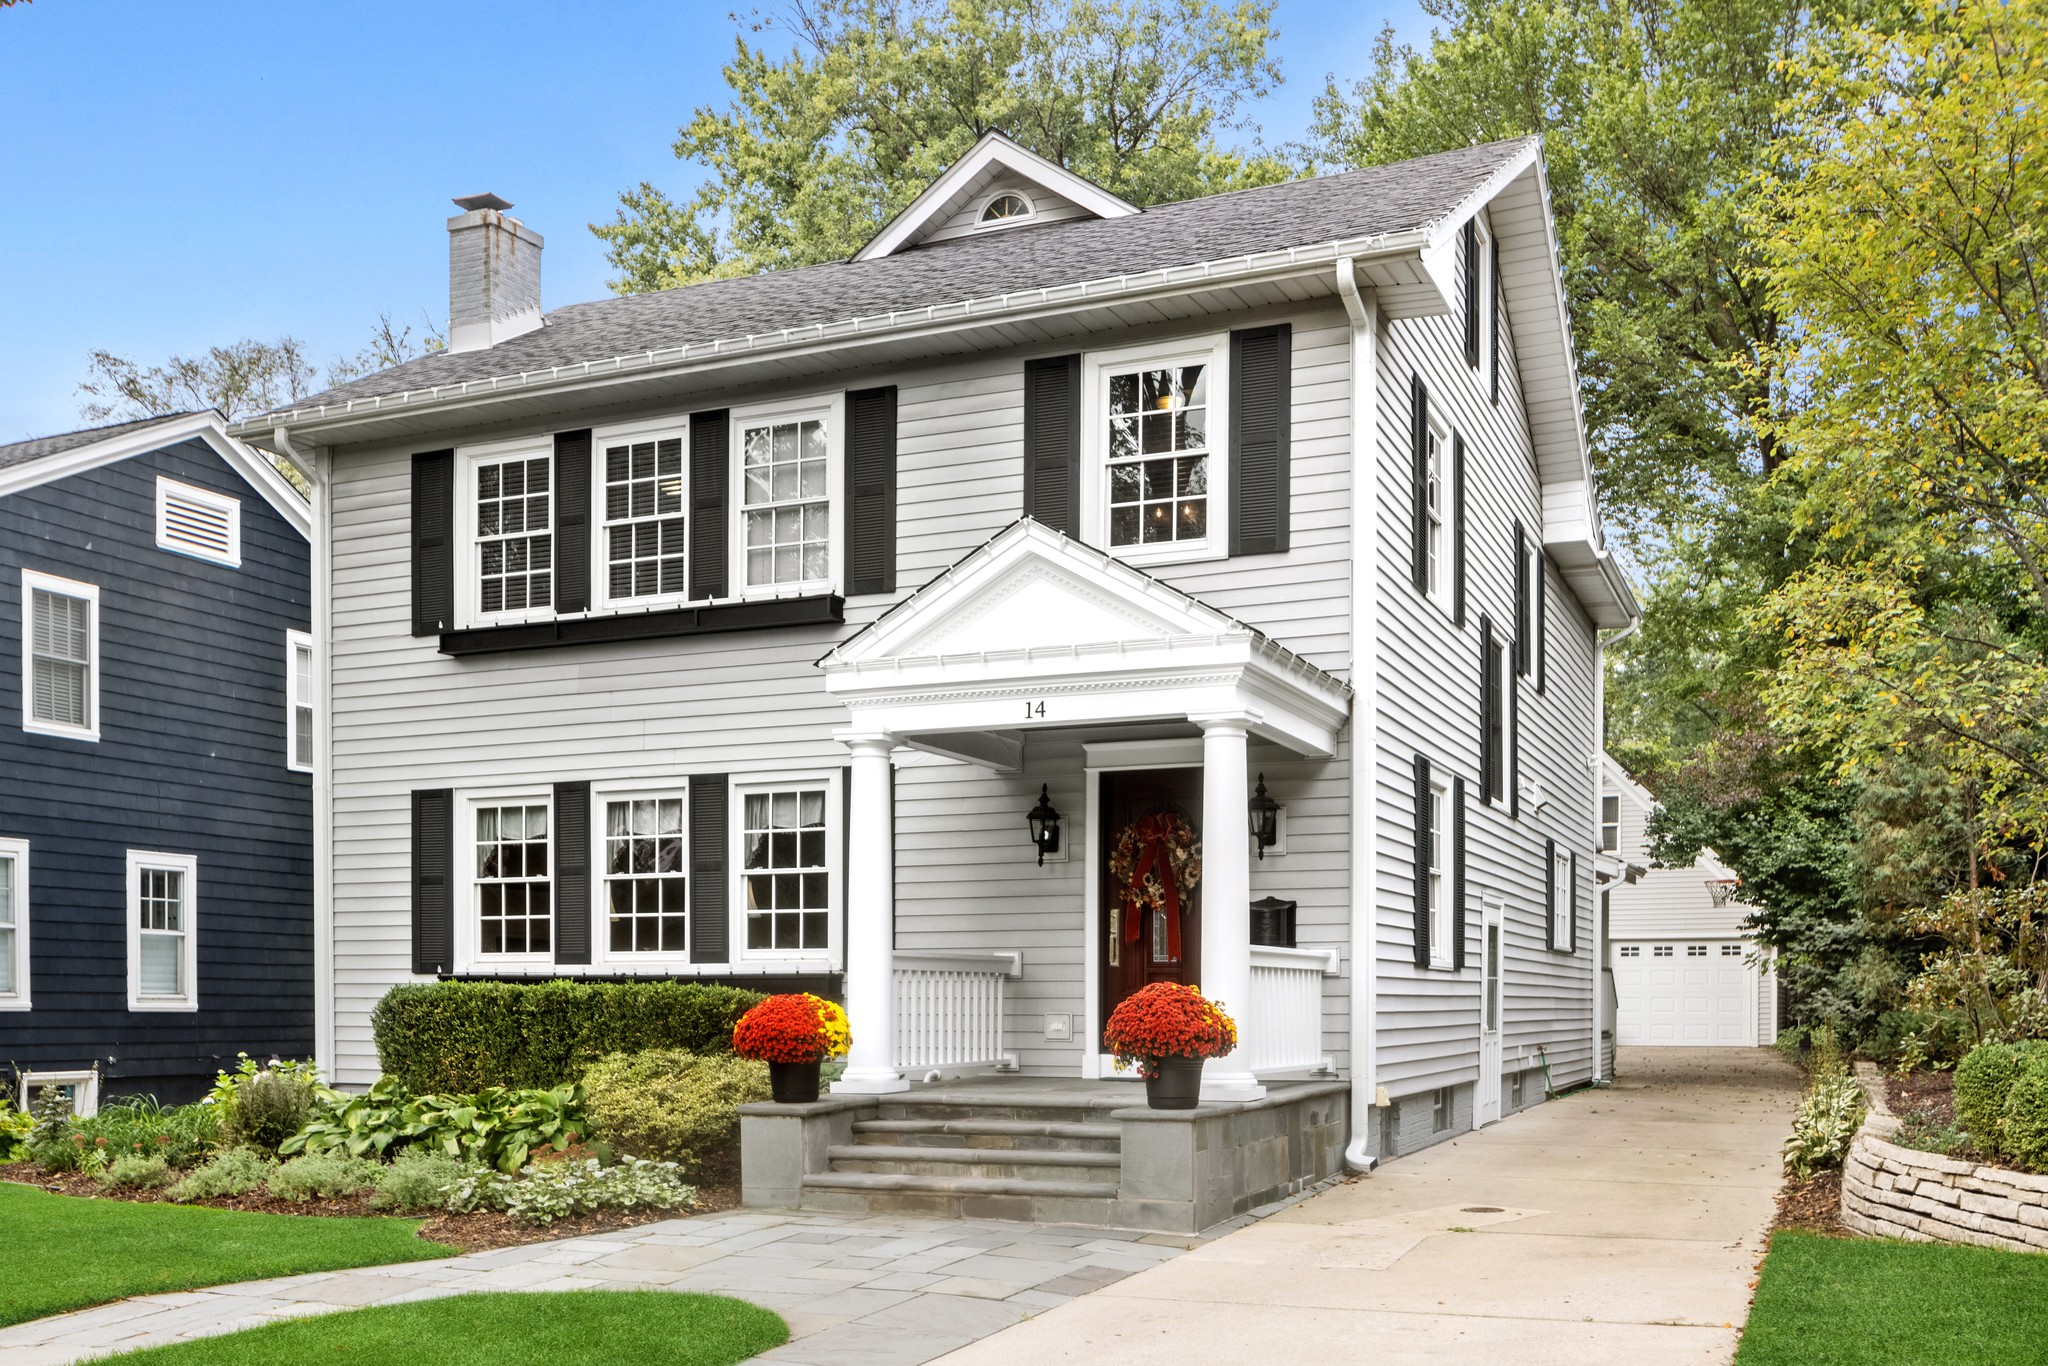 Refinished 4-Bedroom House In Downtown Hinsdale